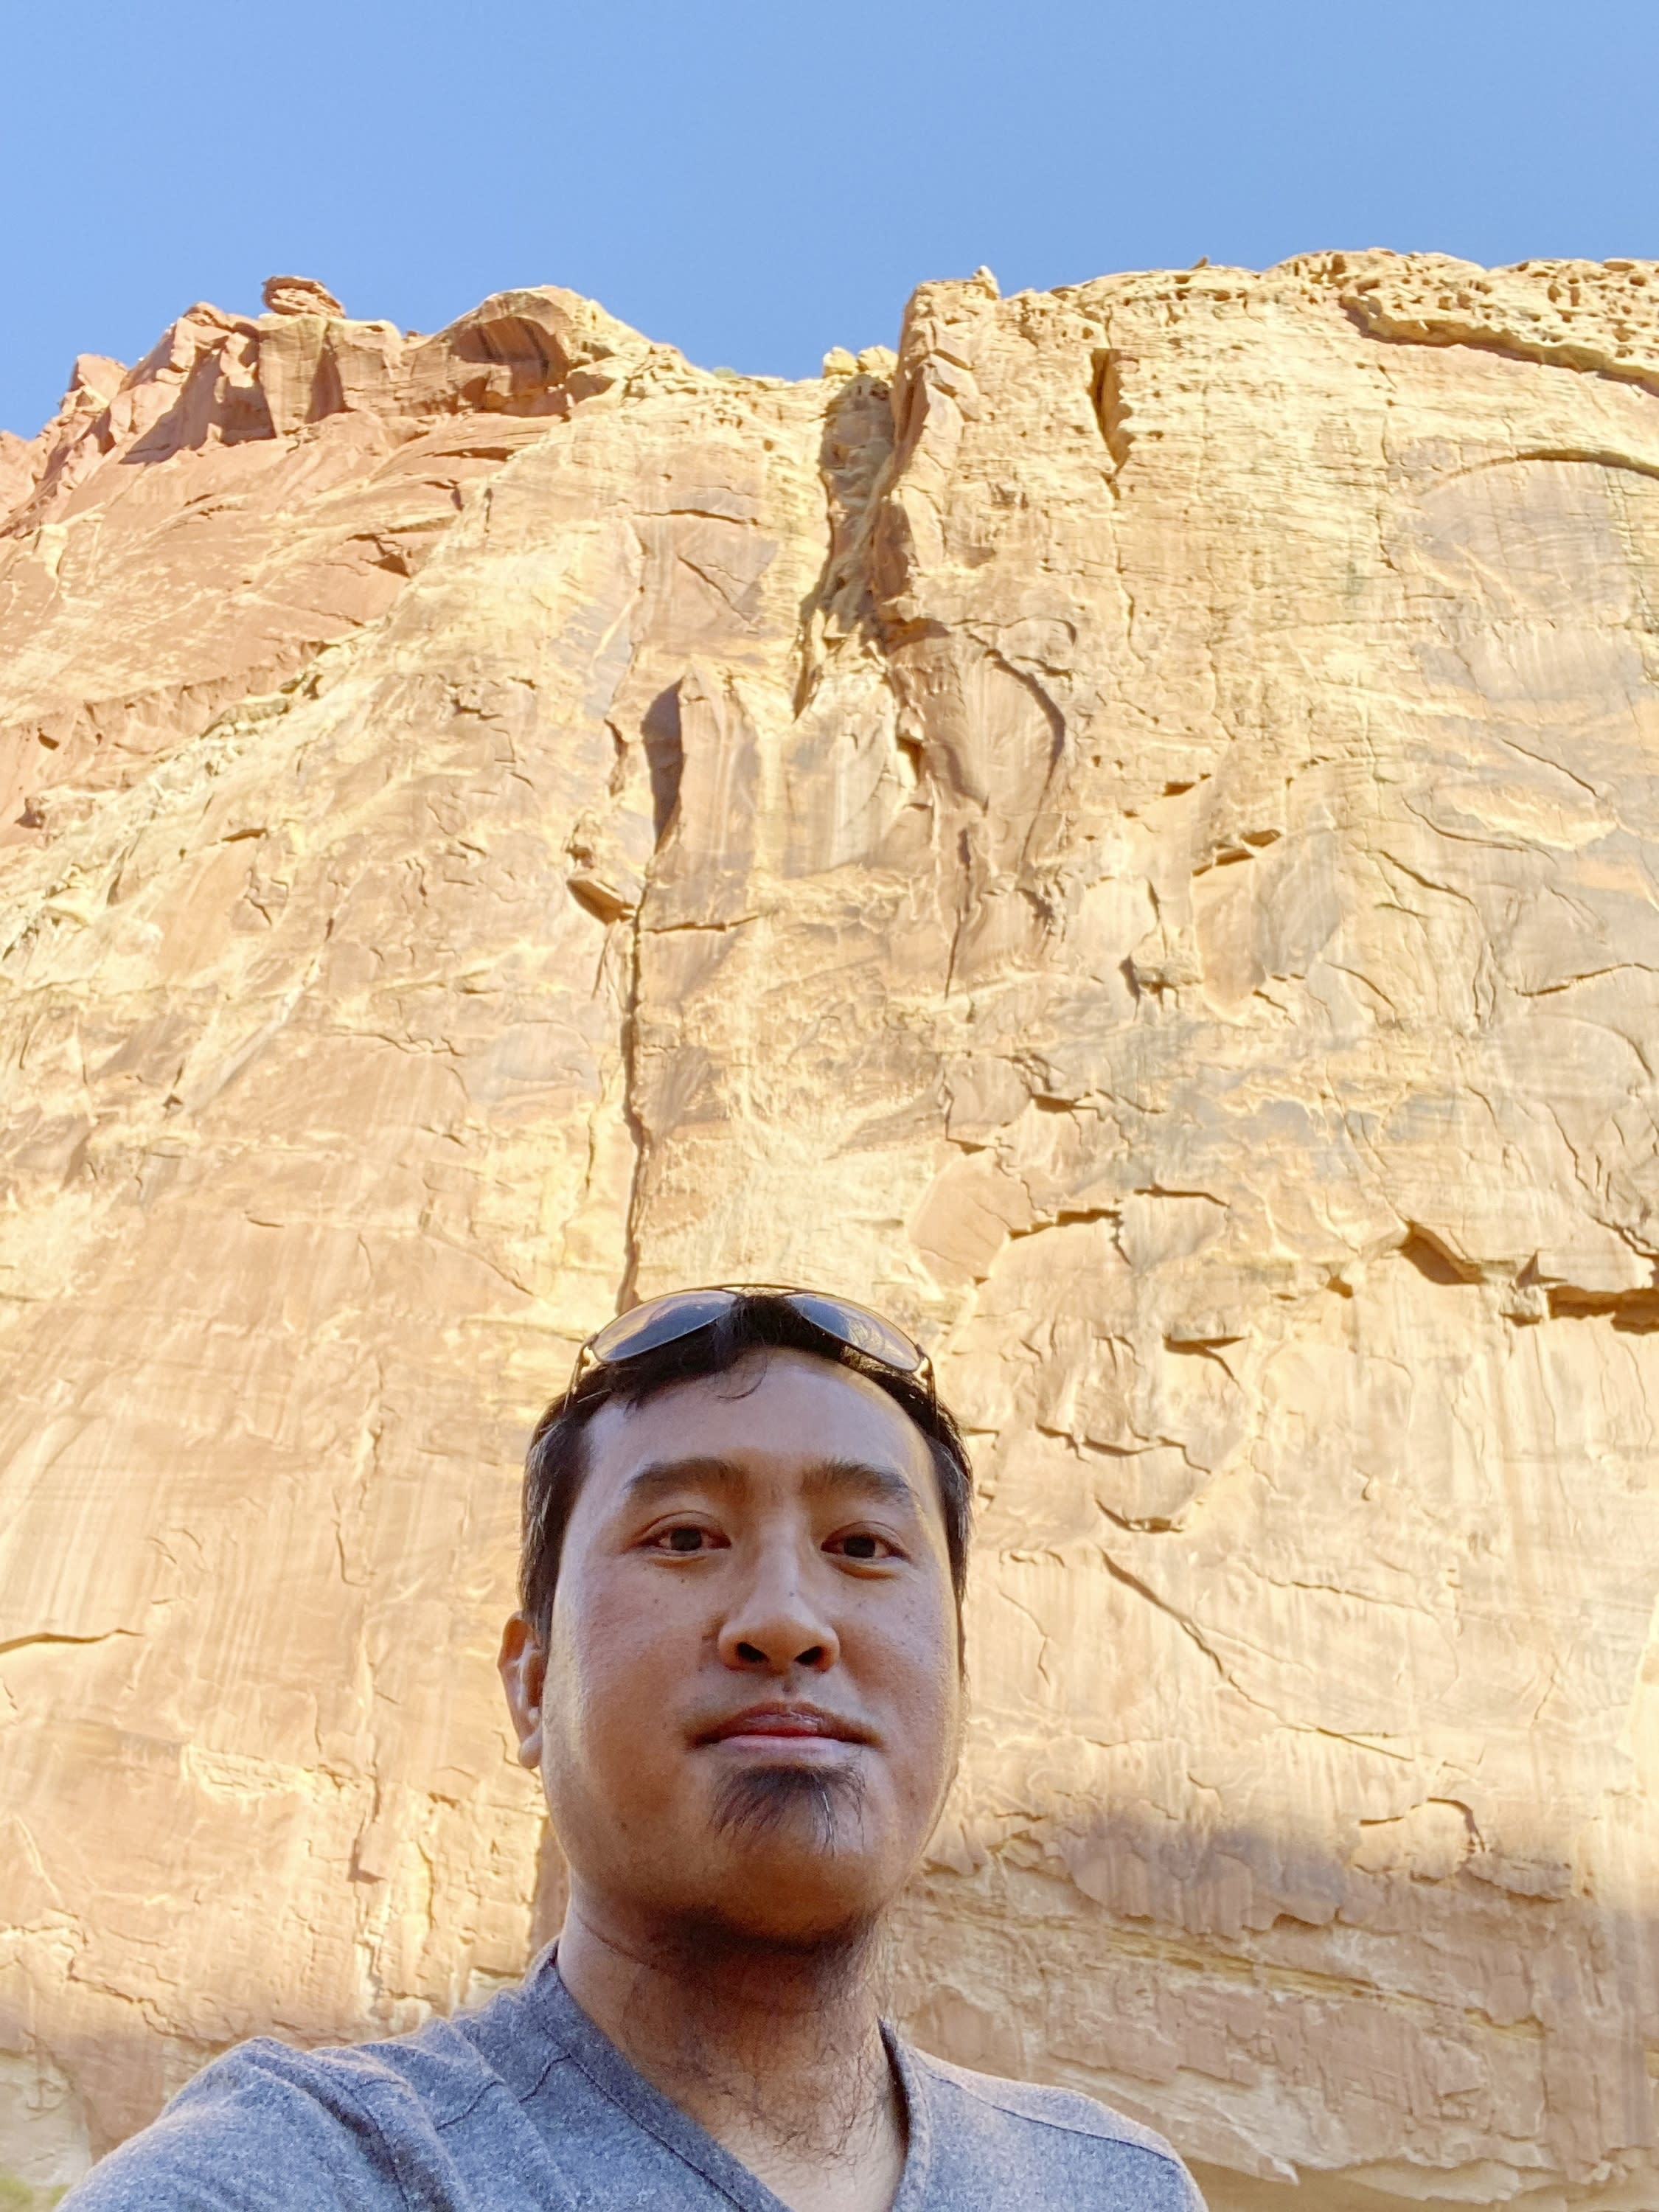 In this Aug. 15, 2020, photo provided by Lian Kual, resettled refugee Kual, originally from Myanmar, stands against a rock wall in the Capitol Reef National Park in Utah, the state where he now lives. Kual, who was naturalized earlier this year, said he is looking forward to voting in the U.S. presidential election after growing up in a country that had no democratic culture during decades of military rules. (Lian Kual via AP)